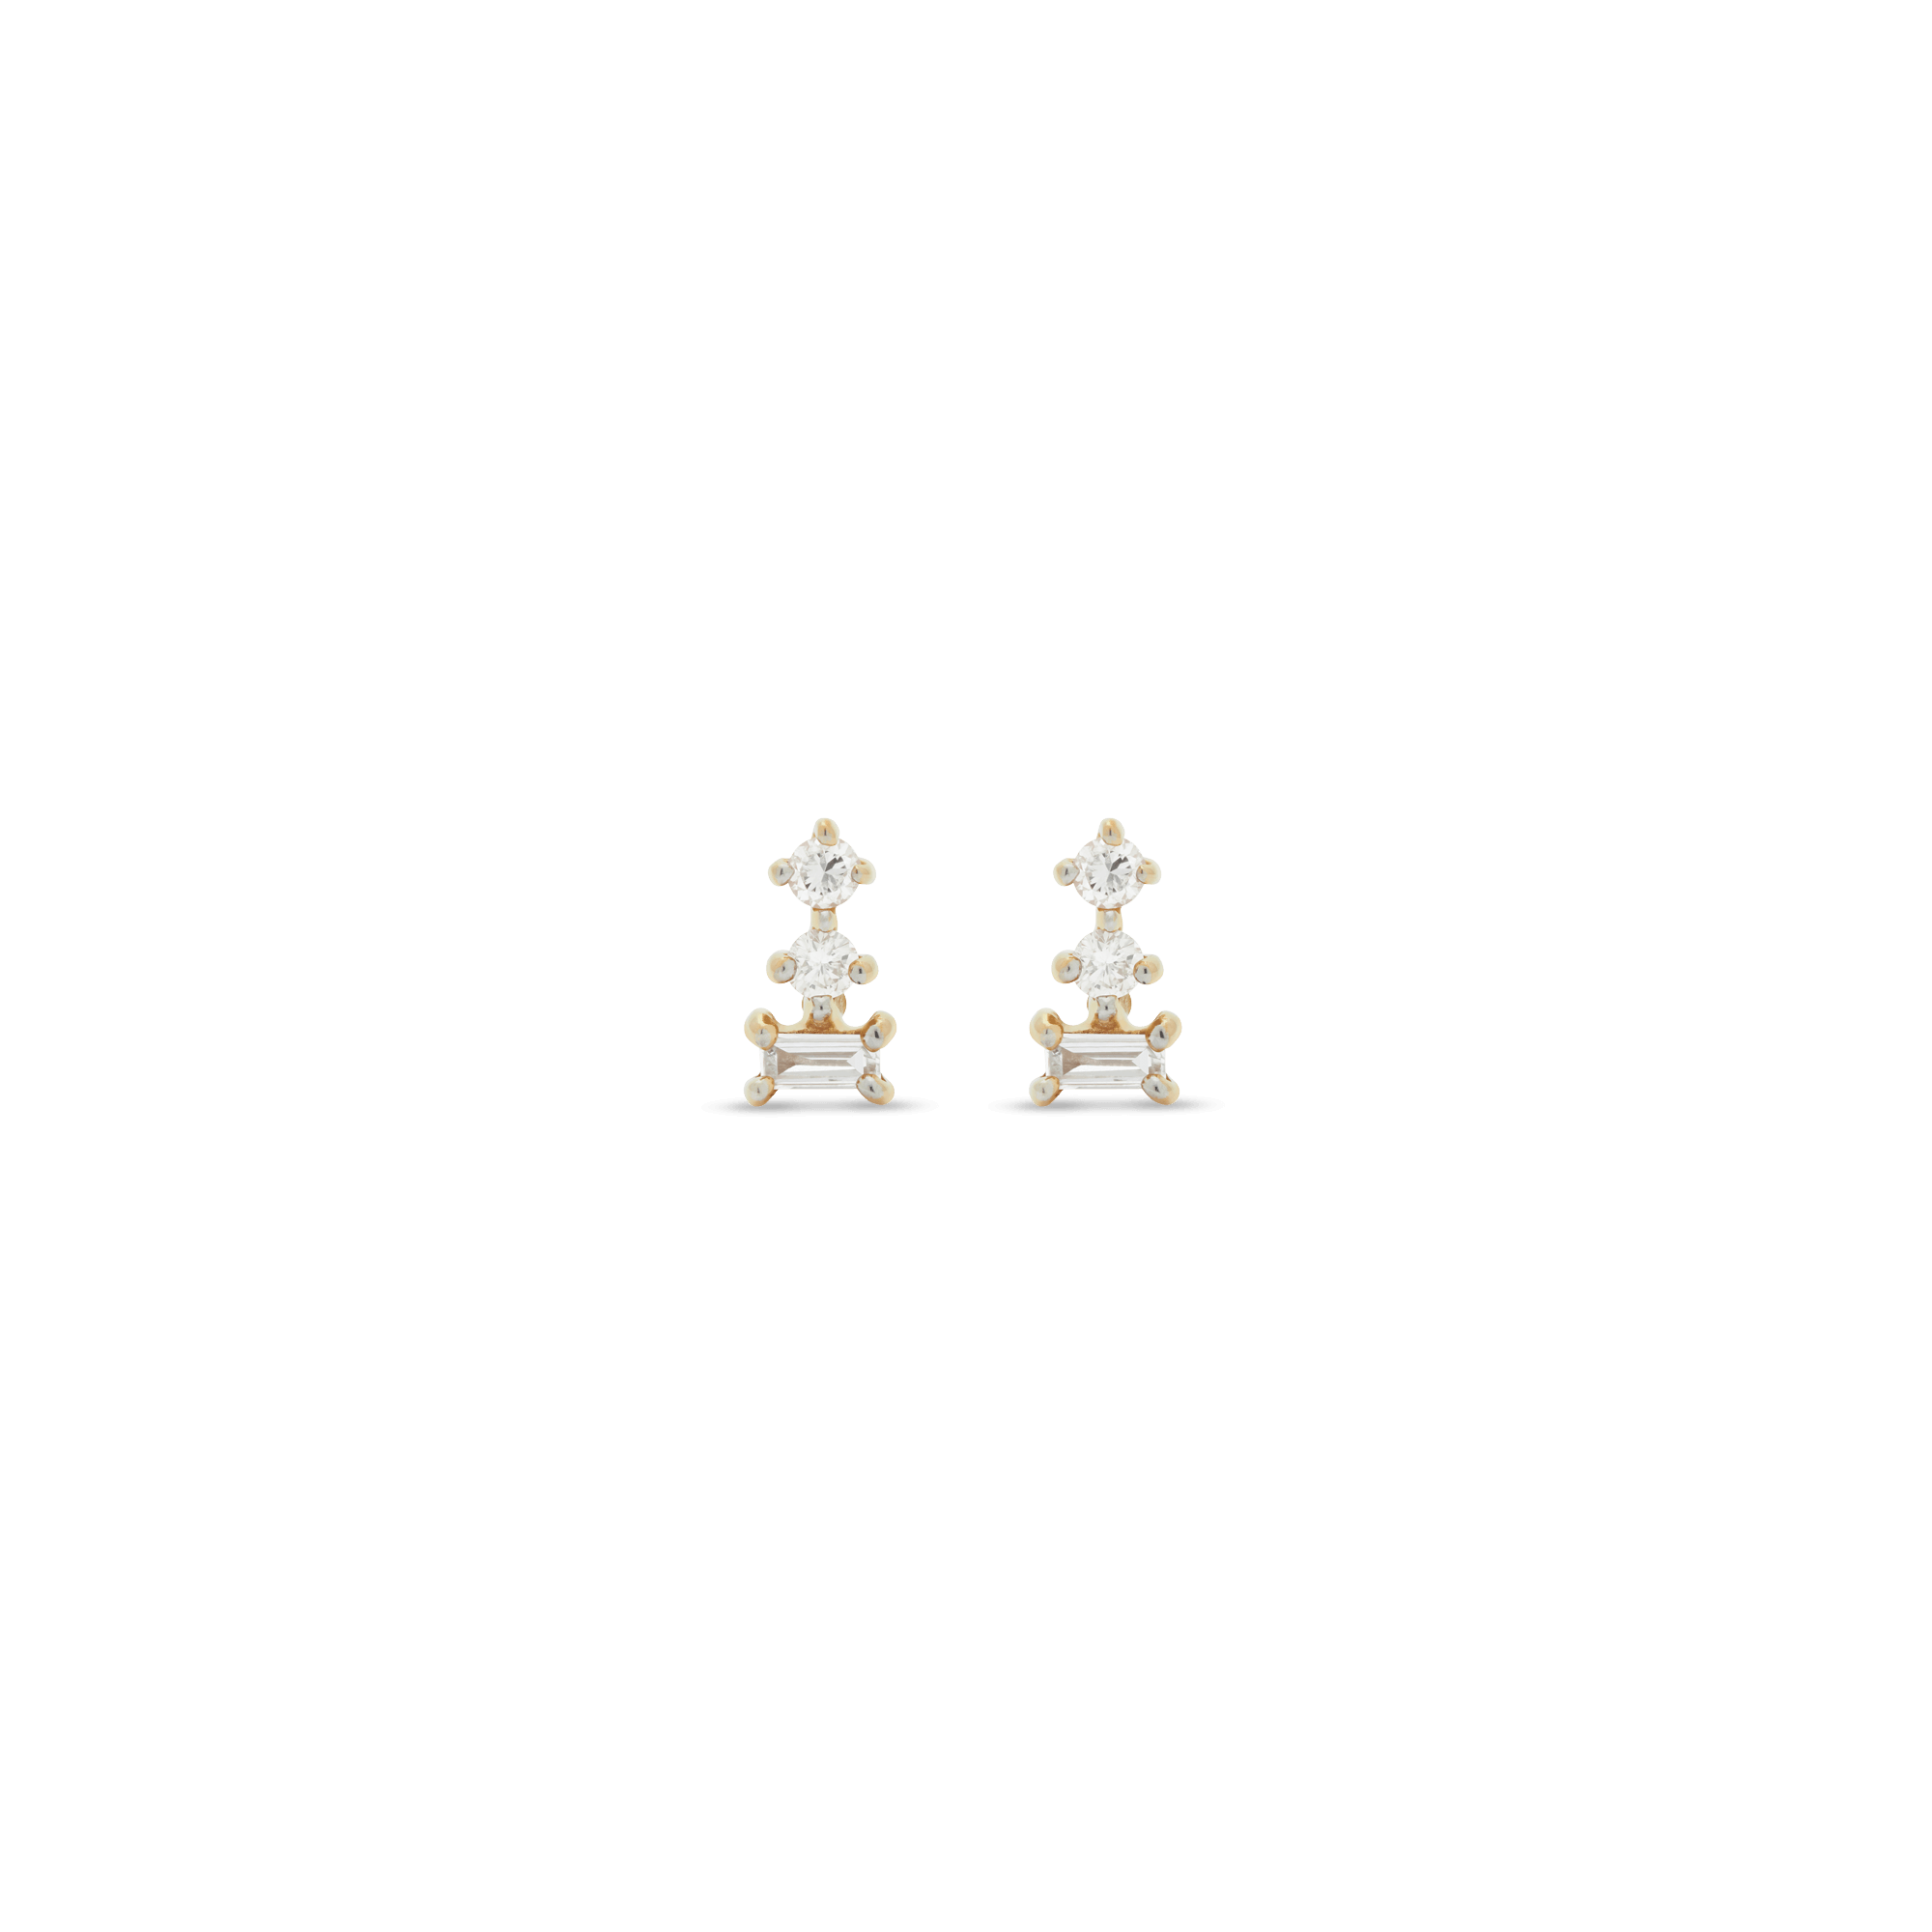 Triple Stacked Diamond Studs